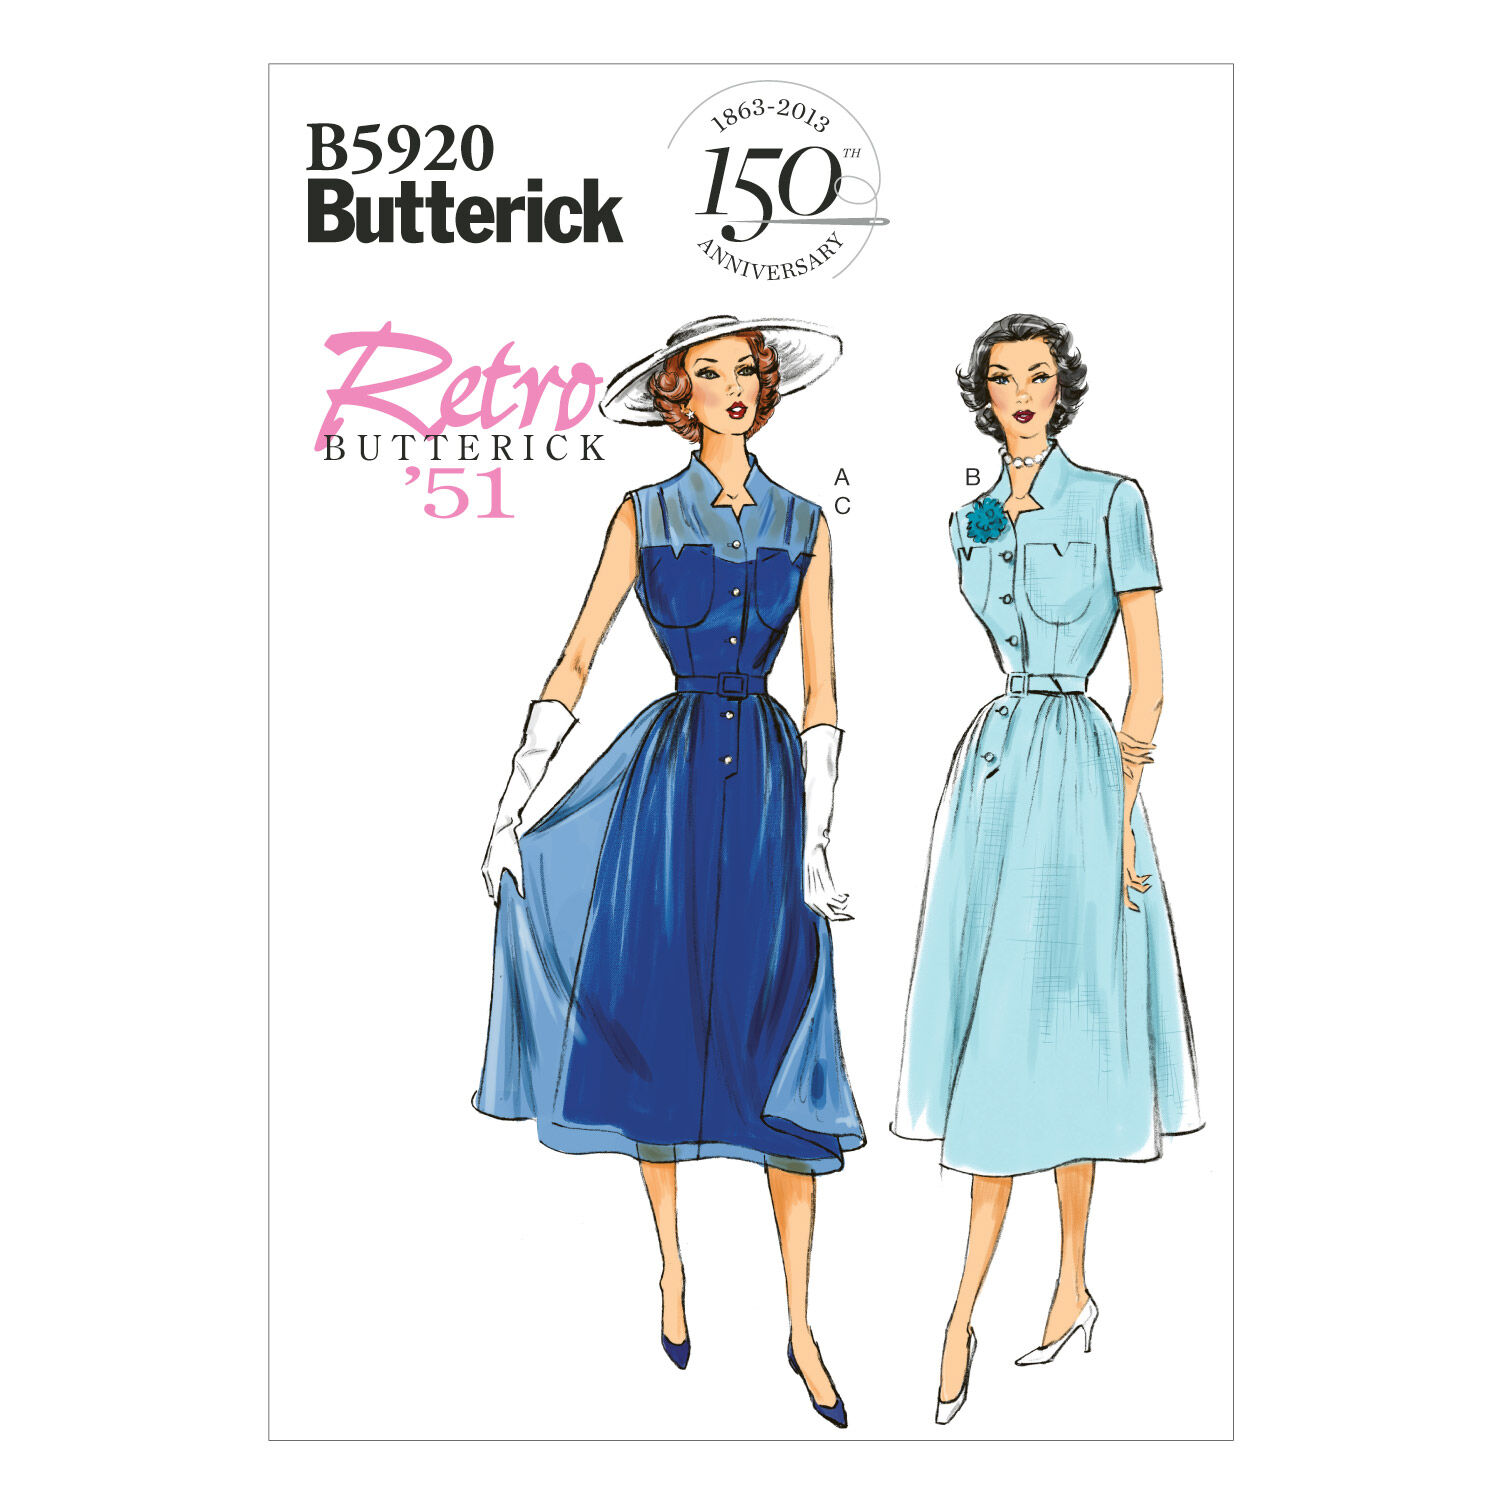 1950s Sewing Patterns | Dresses, Skirts, Tops, Mens 1951 Mccall Pattern B5920 14 - 16 - 18 - 2 - Butterick Pattern $19.95 AT vintagedancer.com